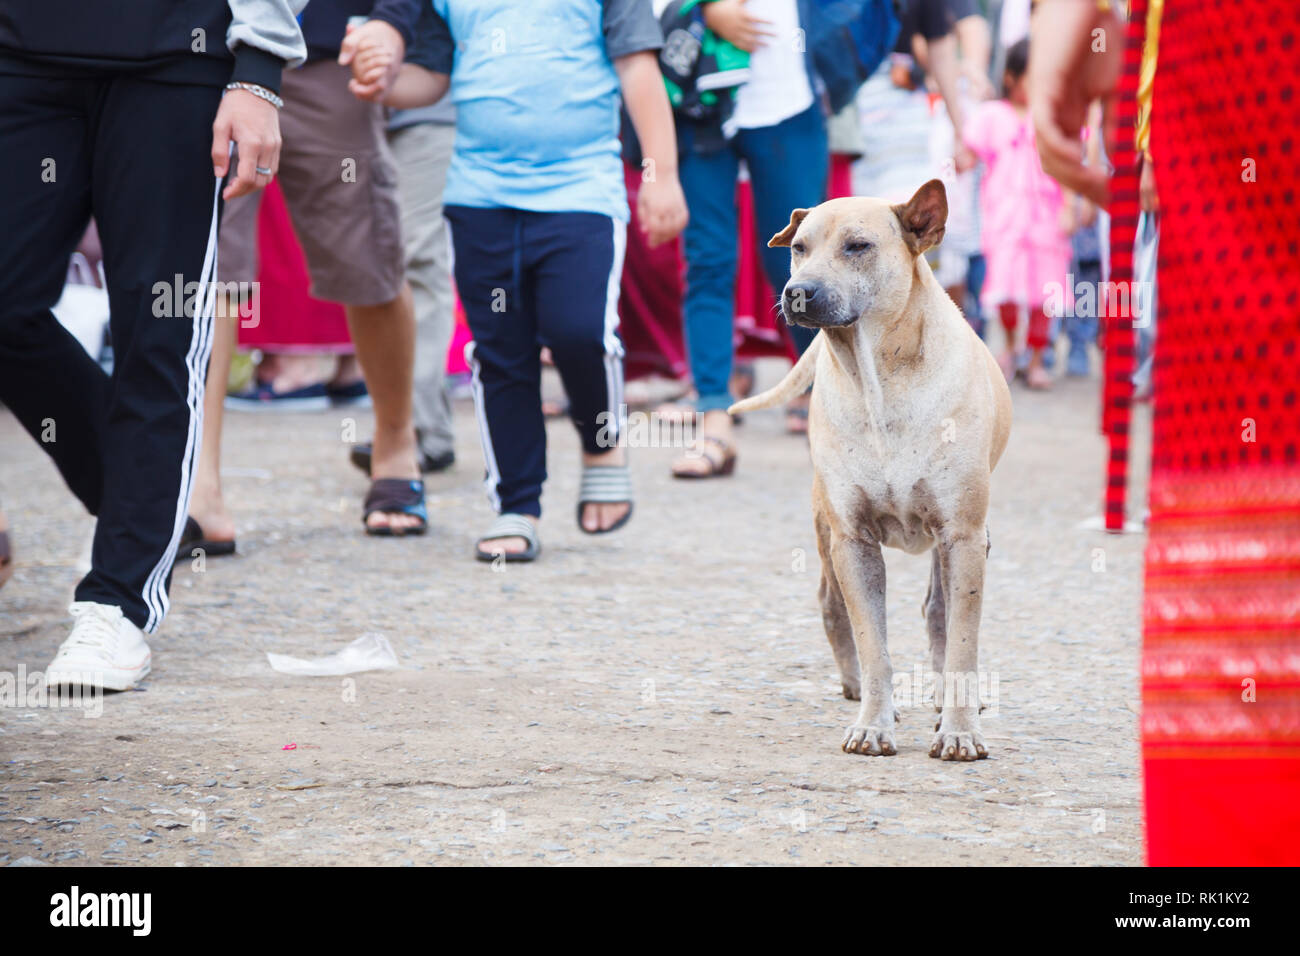 unattended stray mixed breed brown white colored street dog on pedestrian walkway background. Domestic Animal, Human friend, Companion, Pet care, Dog  - Stock Image